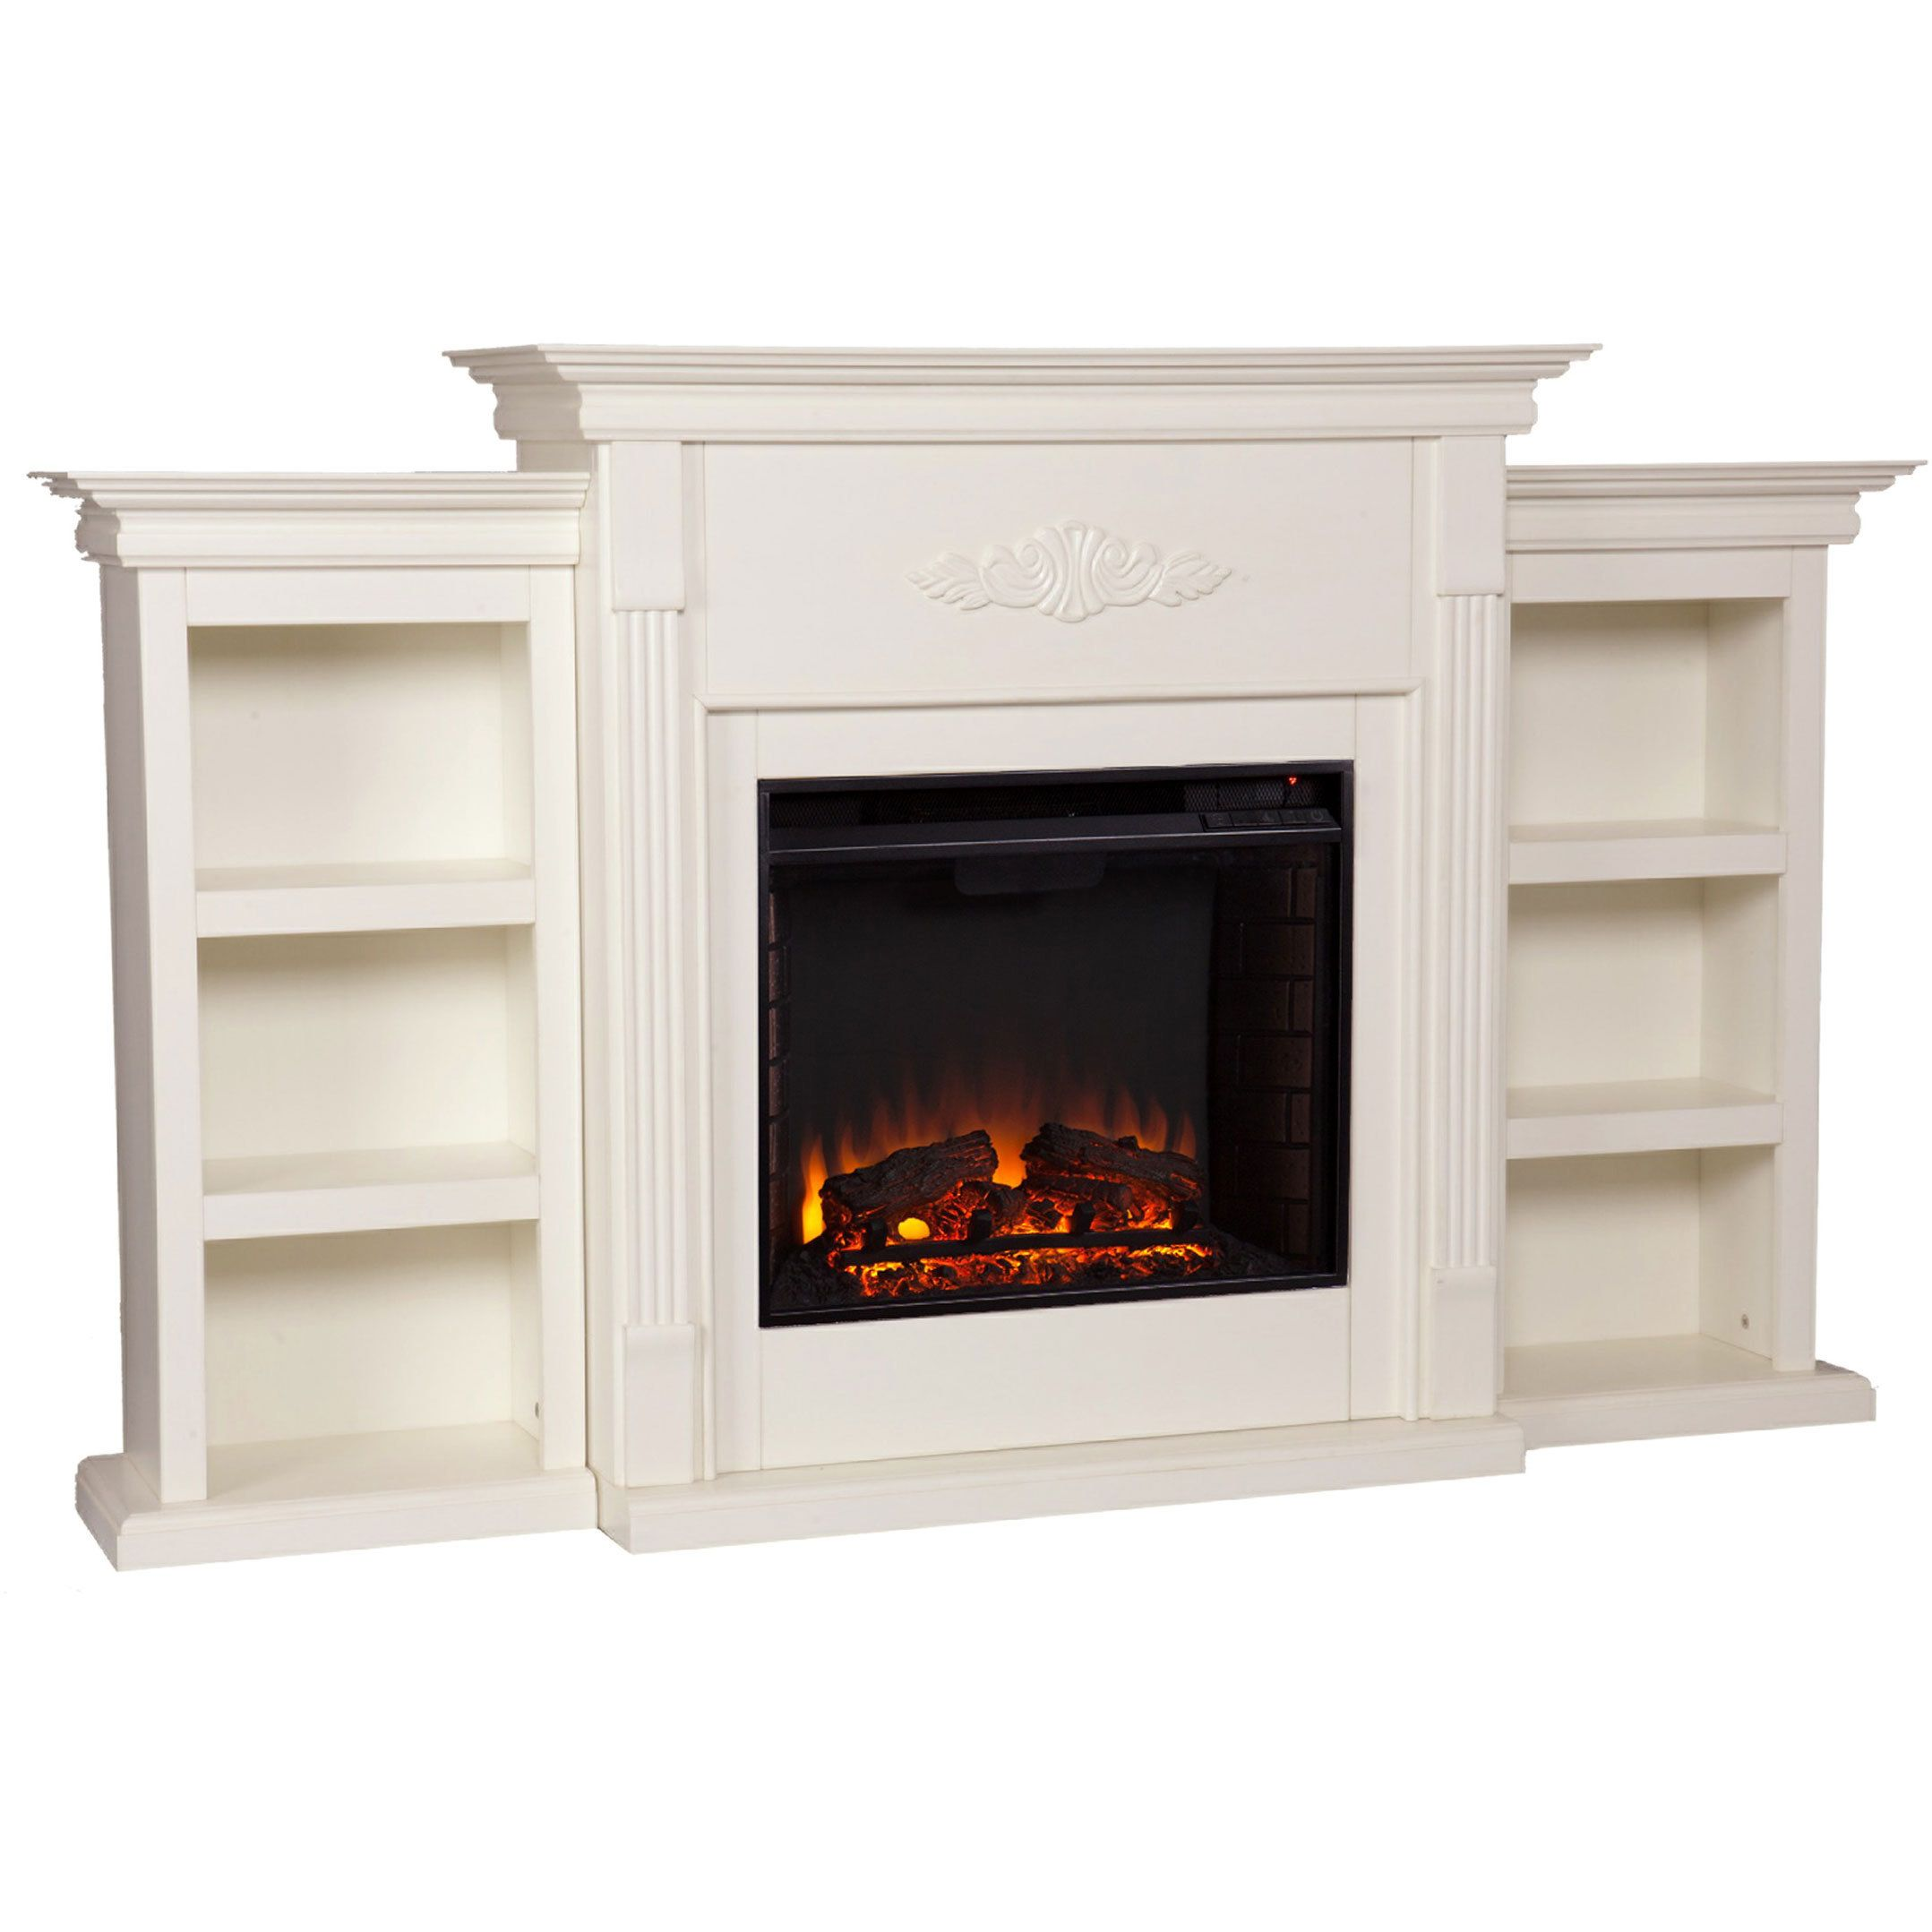 Update your decor with a classic ivory electric fireplace ideal for